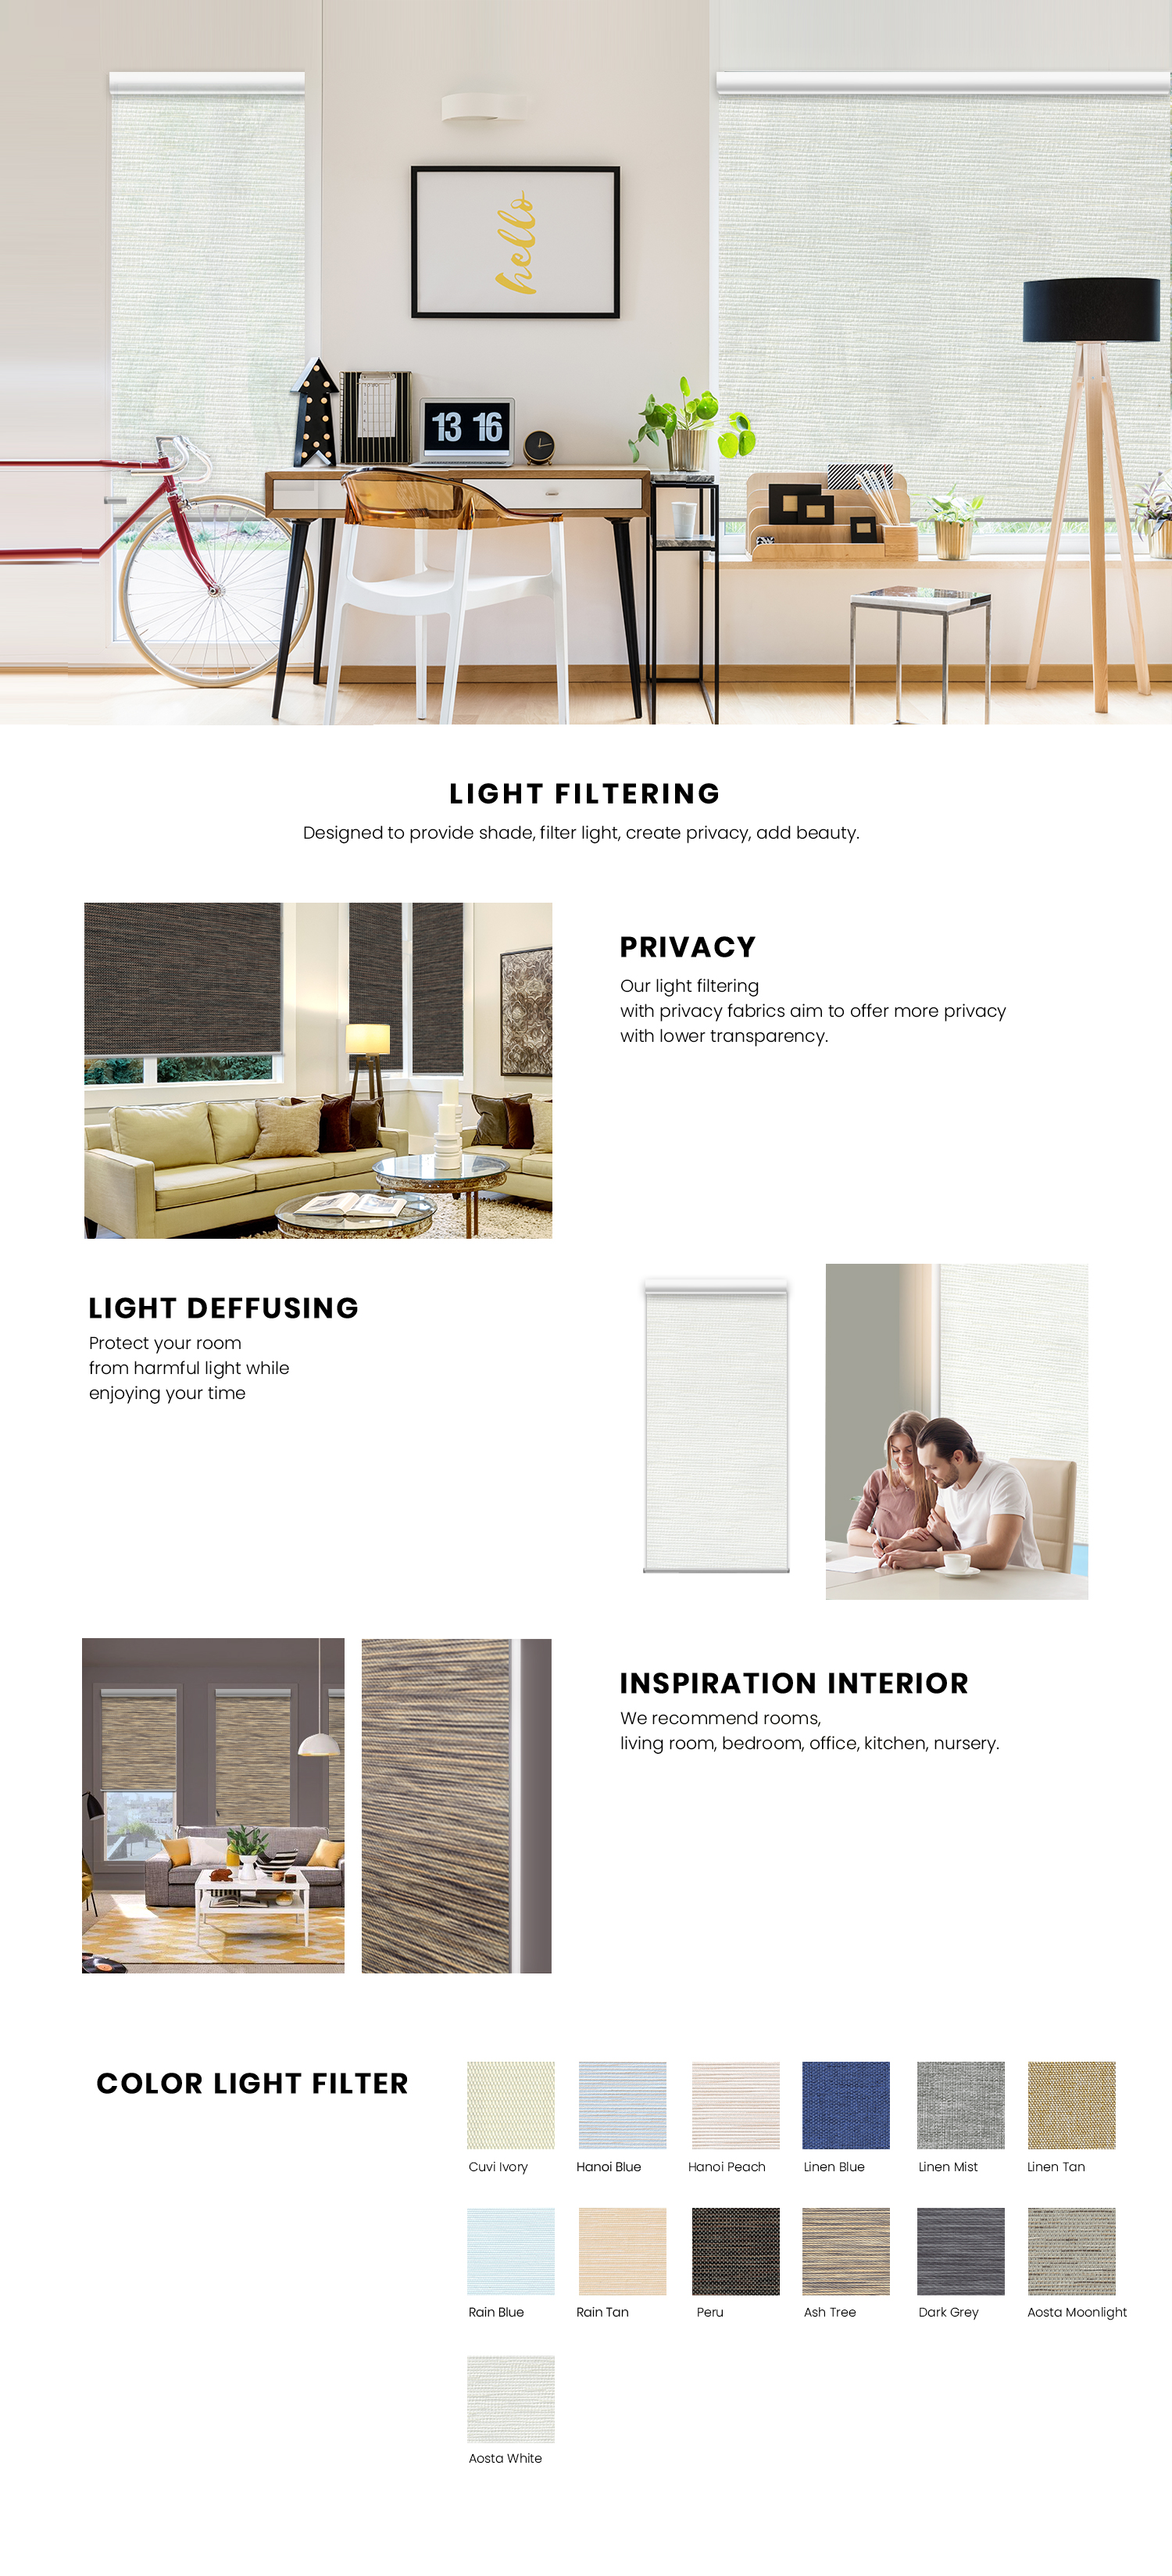 detail-page-light-filtering.jpg